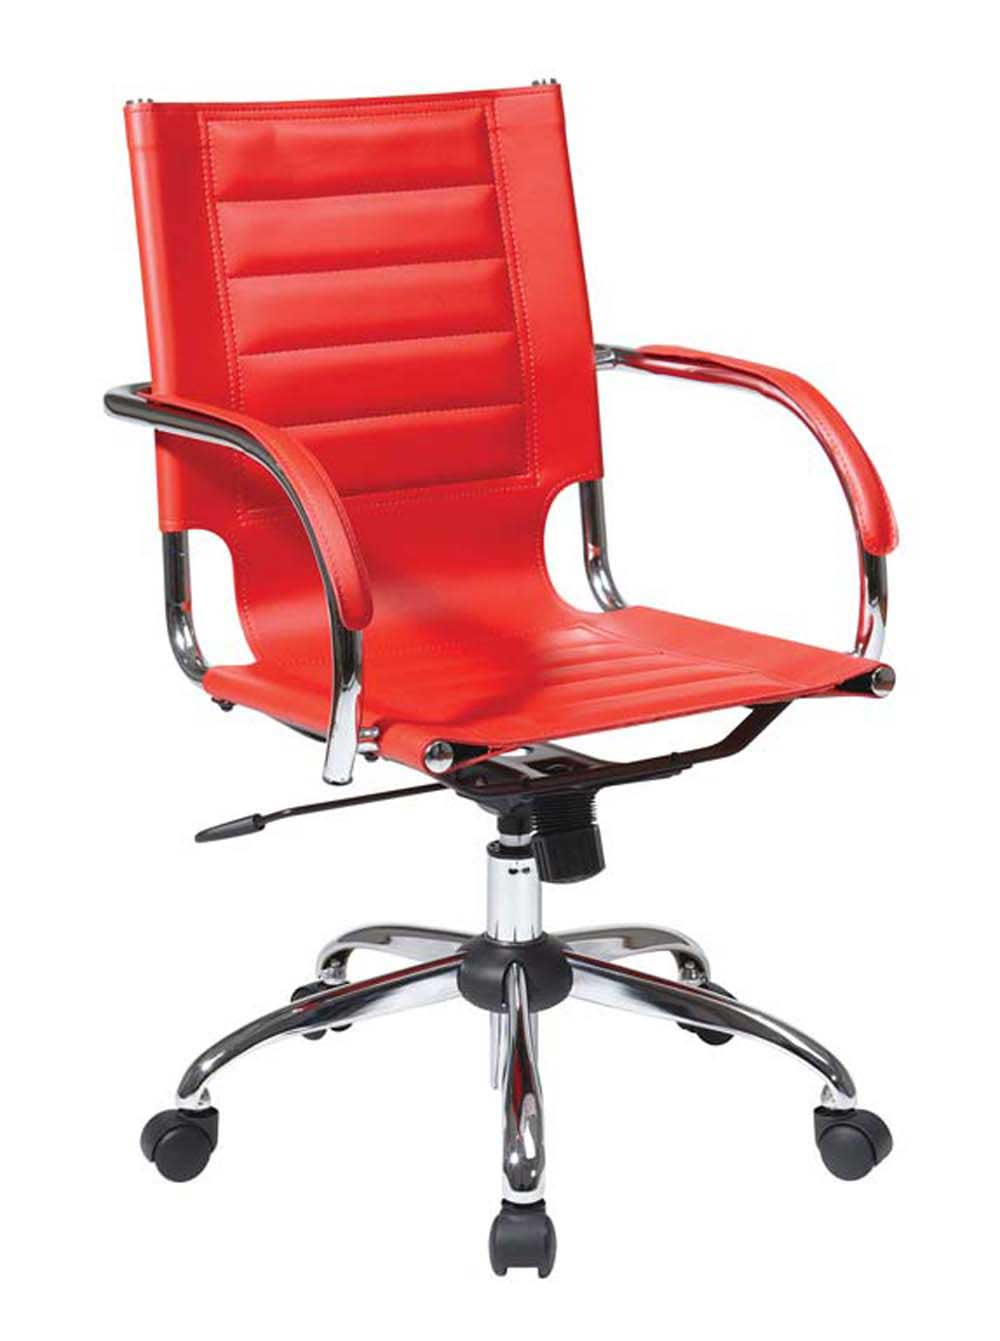 Stylish adjustable height red leather office chair